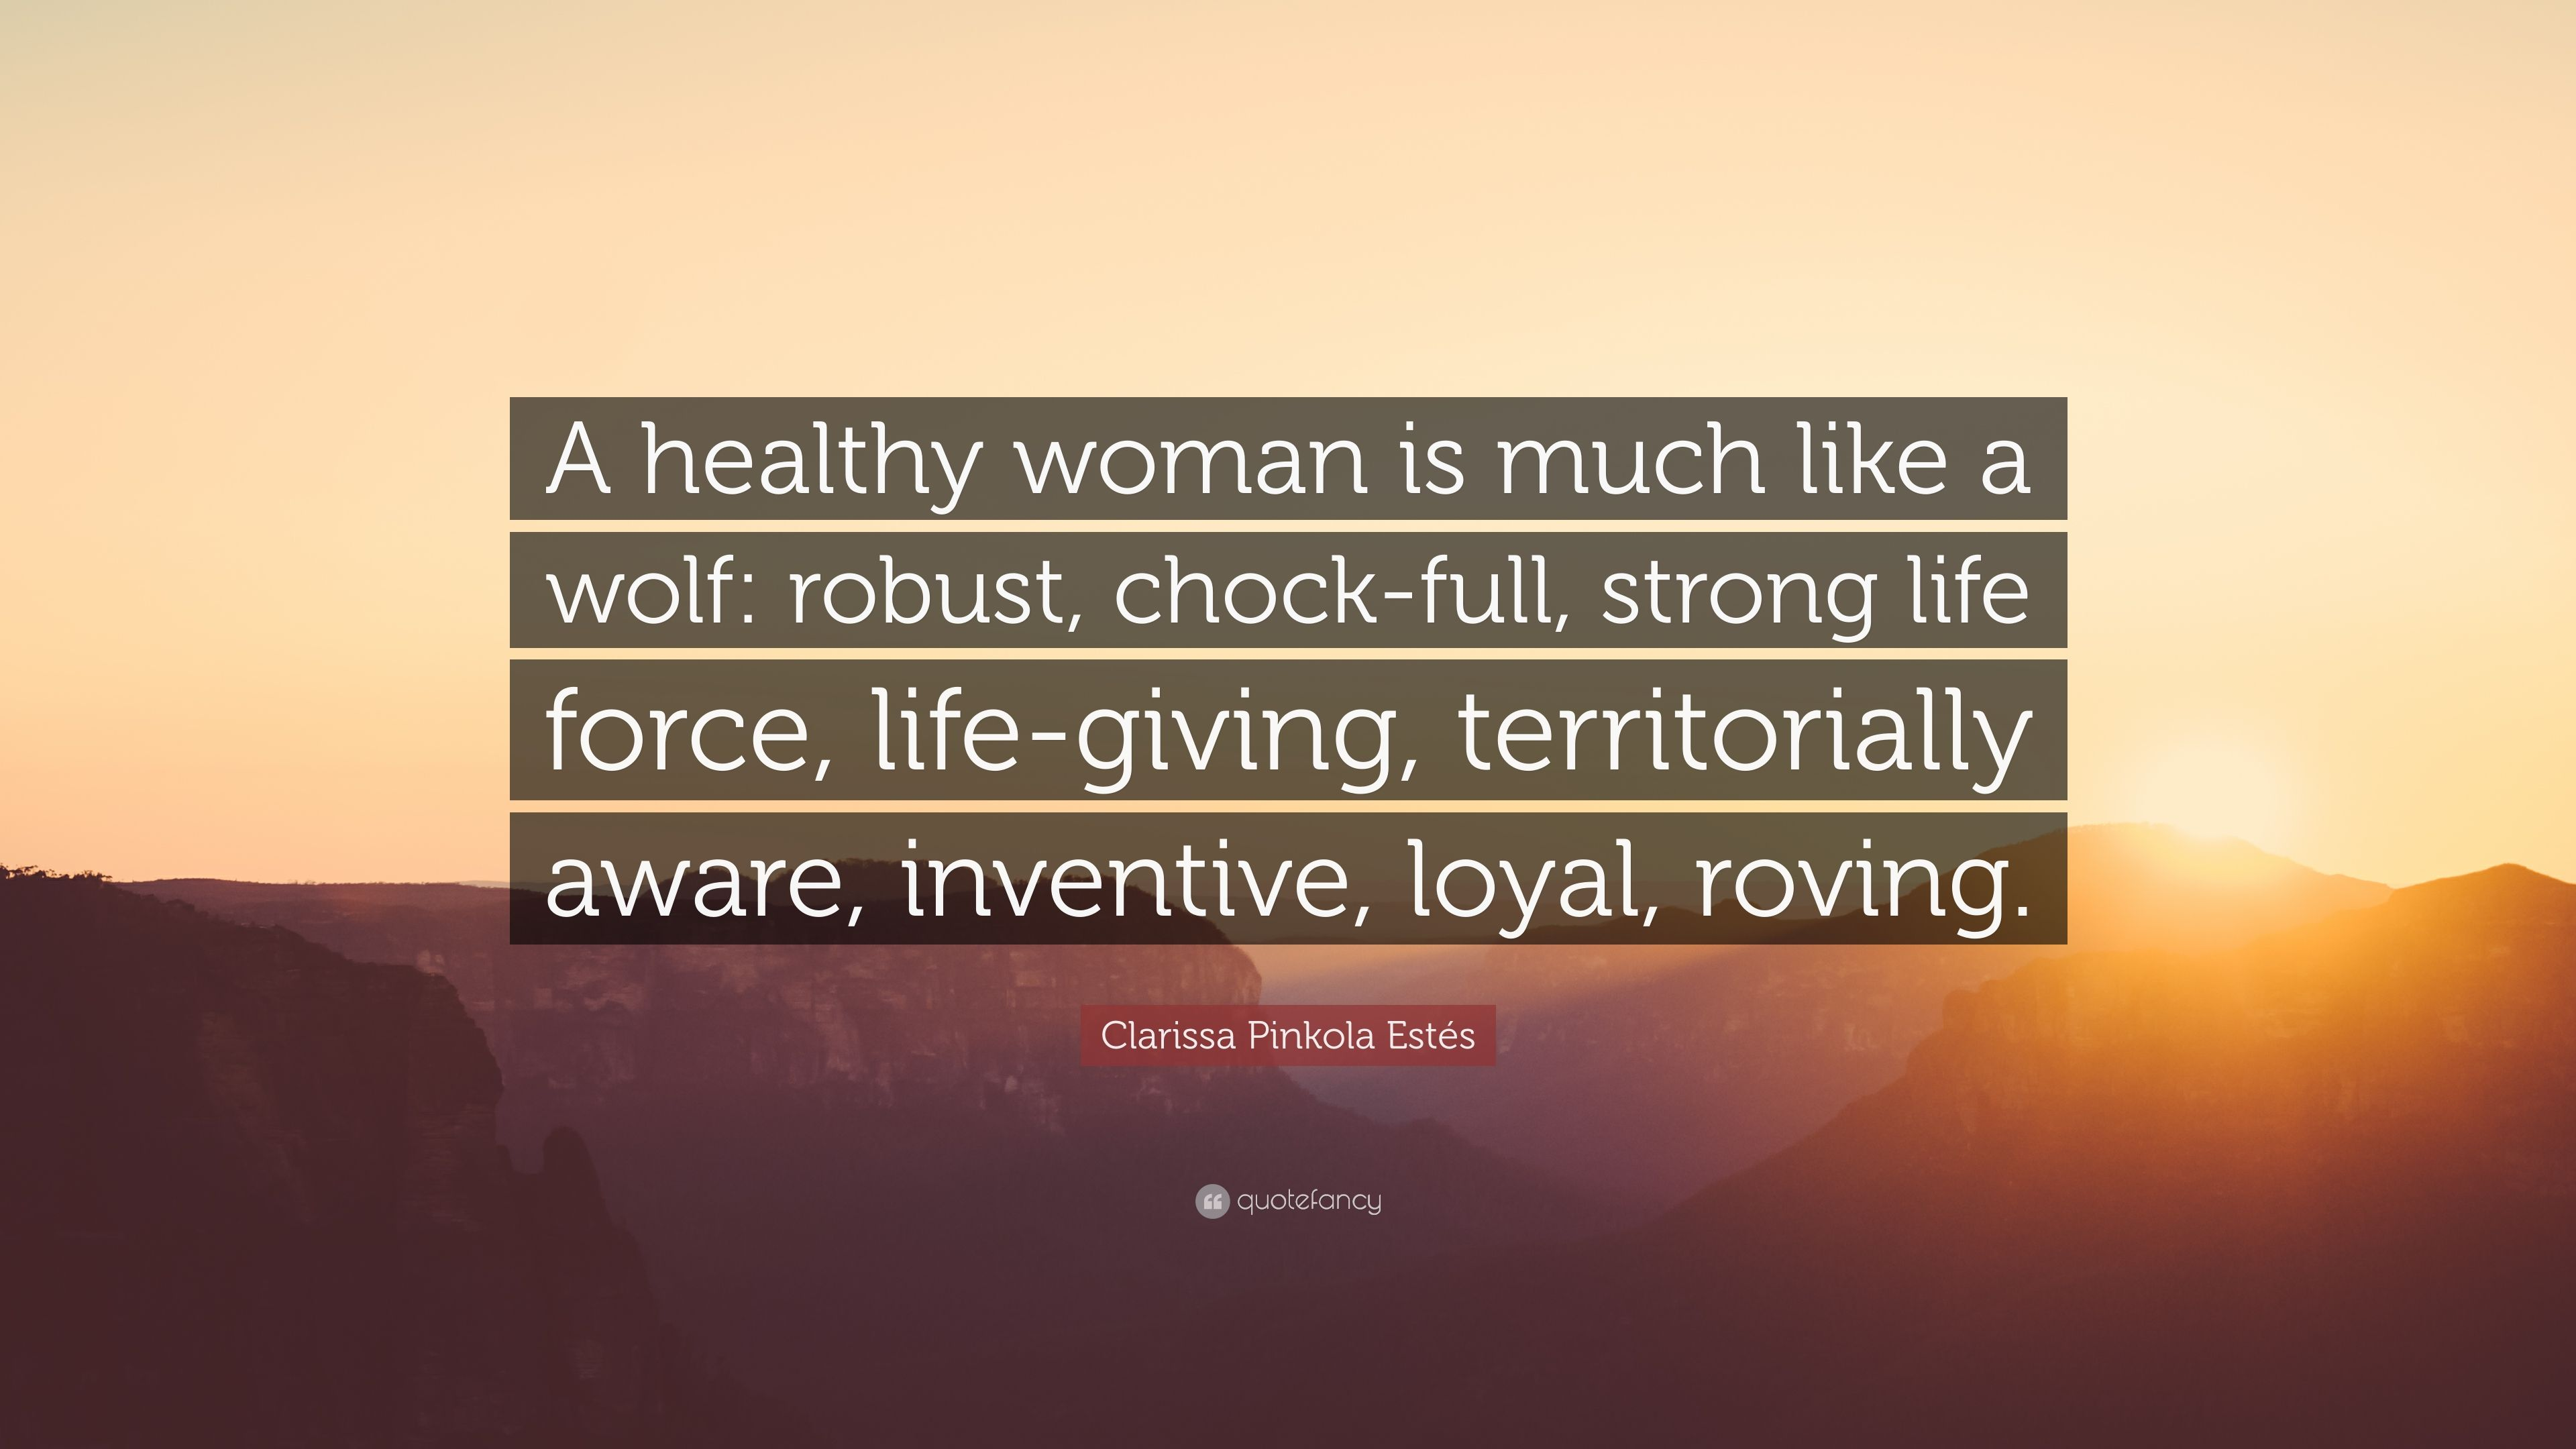 Clarissa Pinkola Estés Quote: U201cA Healthy Woman Is Much Like A Wolf: Robust